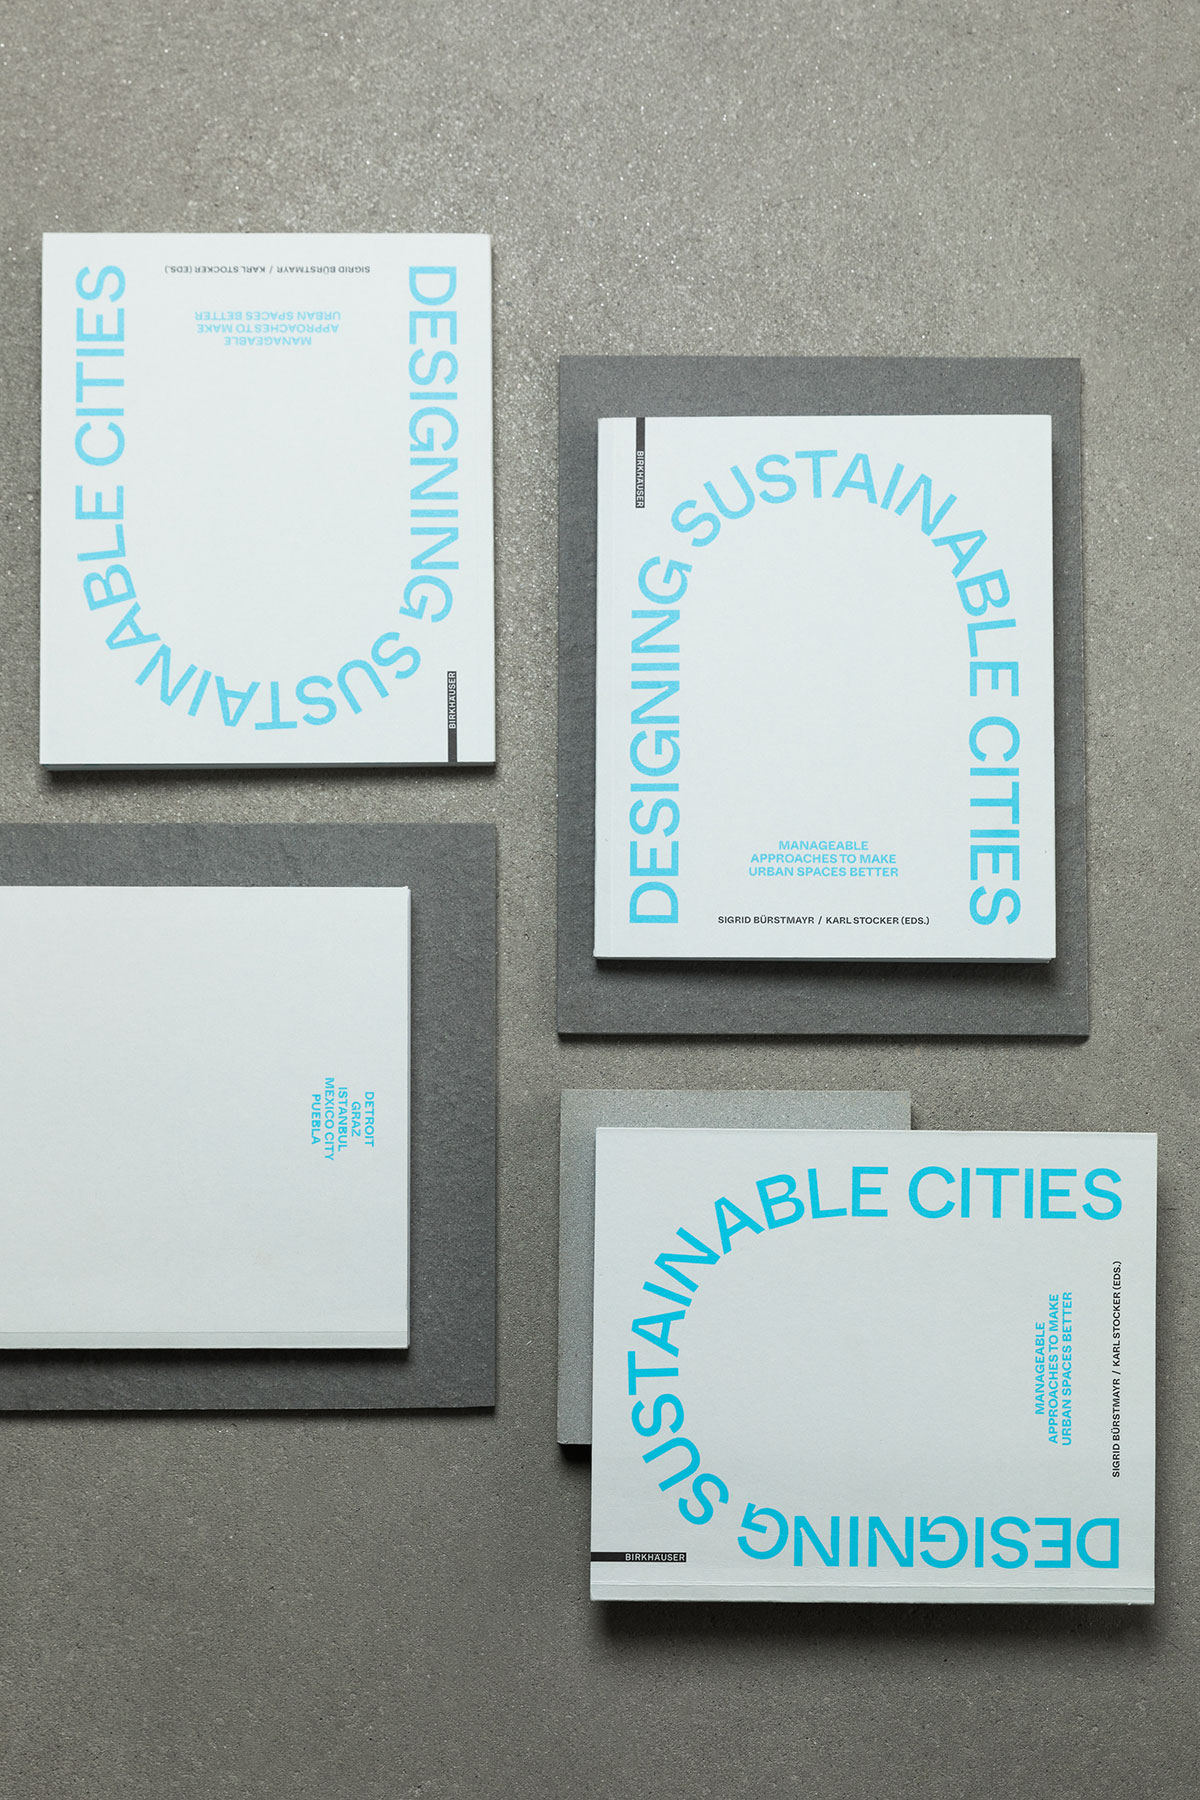 Slanted-Blog-Designing-Sustainable-Cities_04